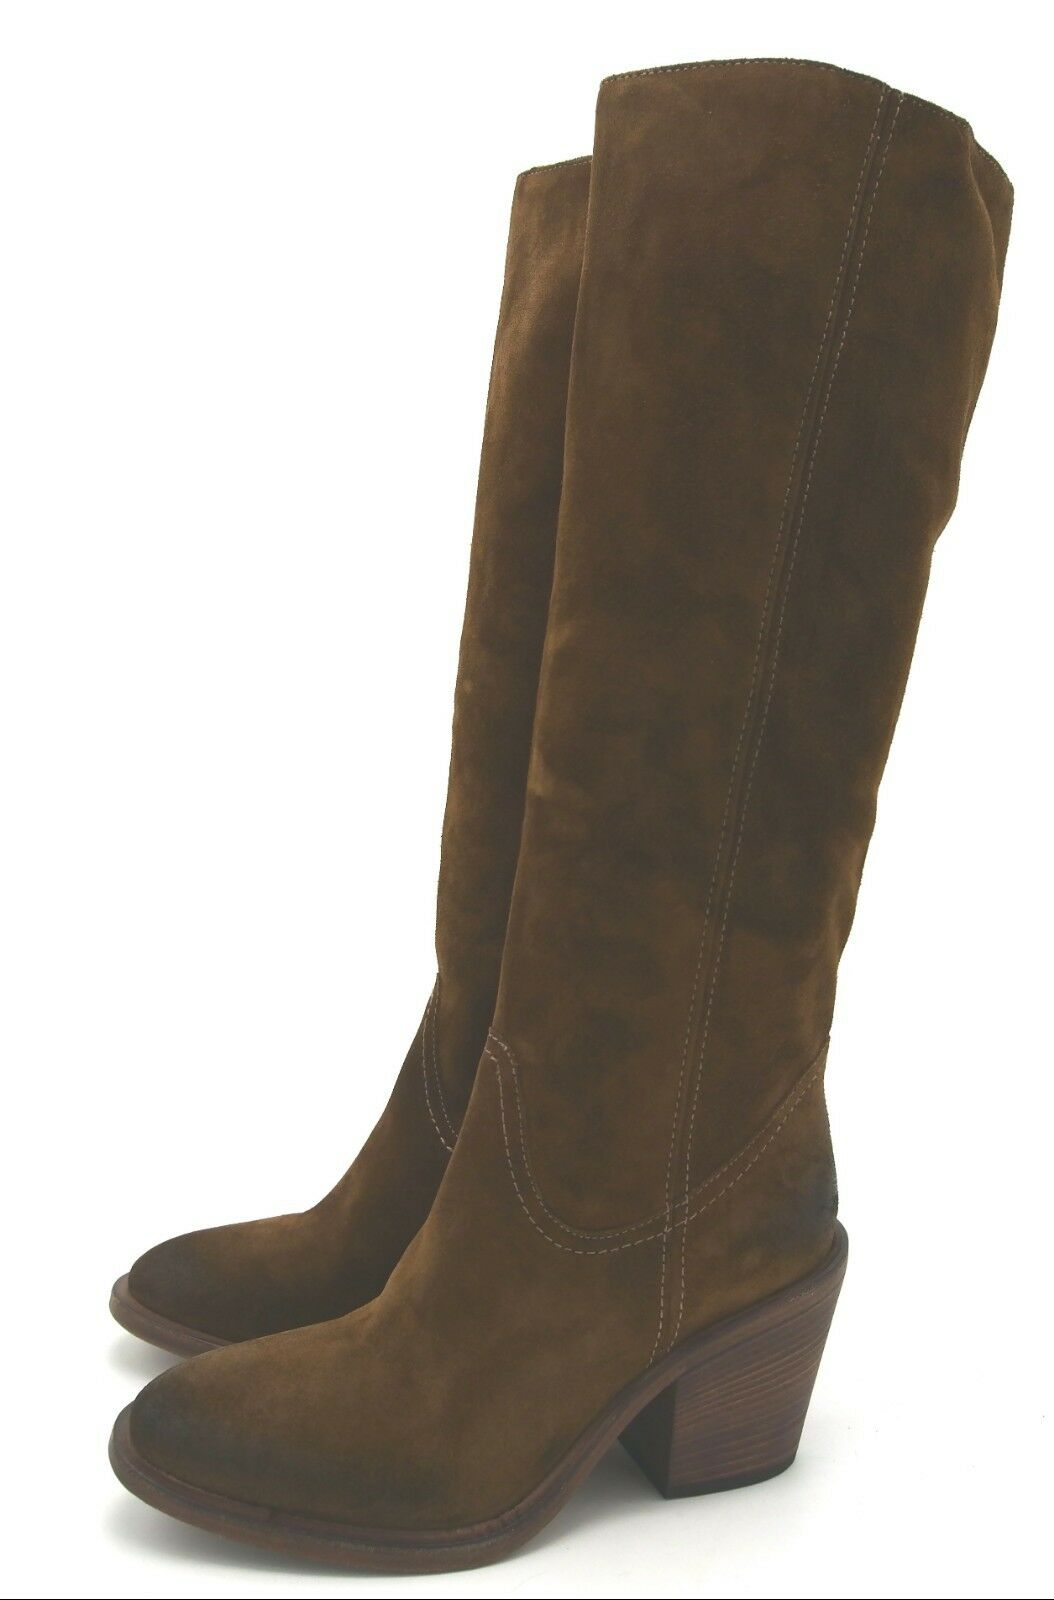 J6703 New Womens VC John Camuto Musa Safari Brown Leather Leather Leather Boot 6 M b0614a